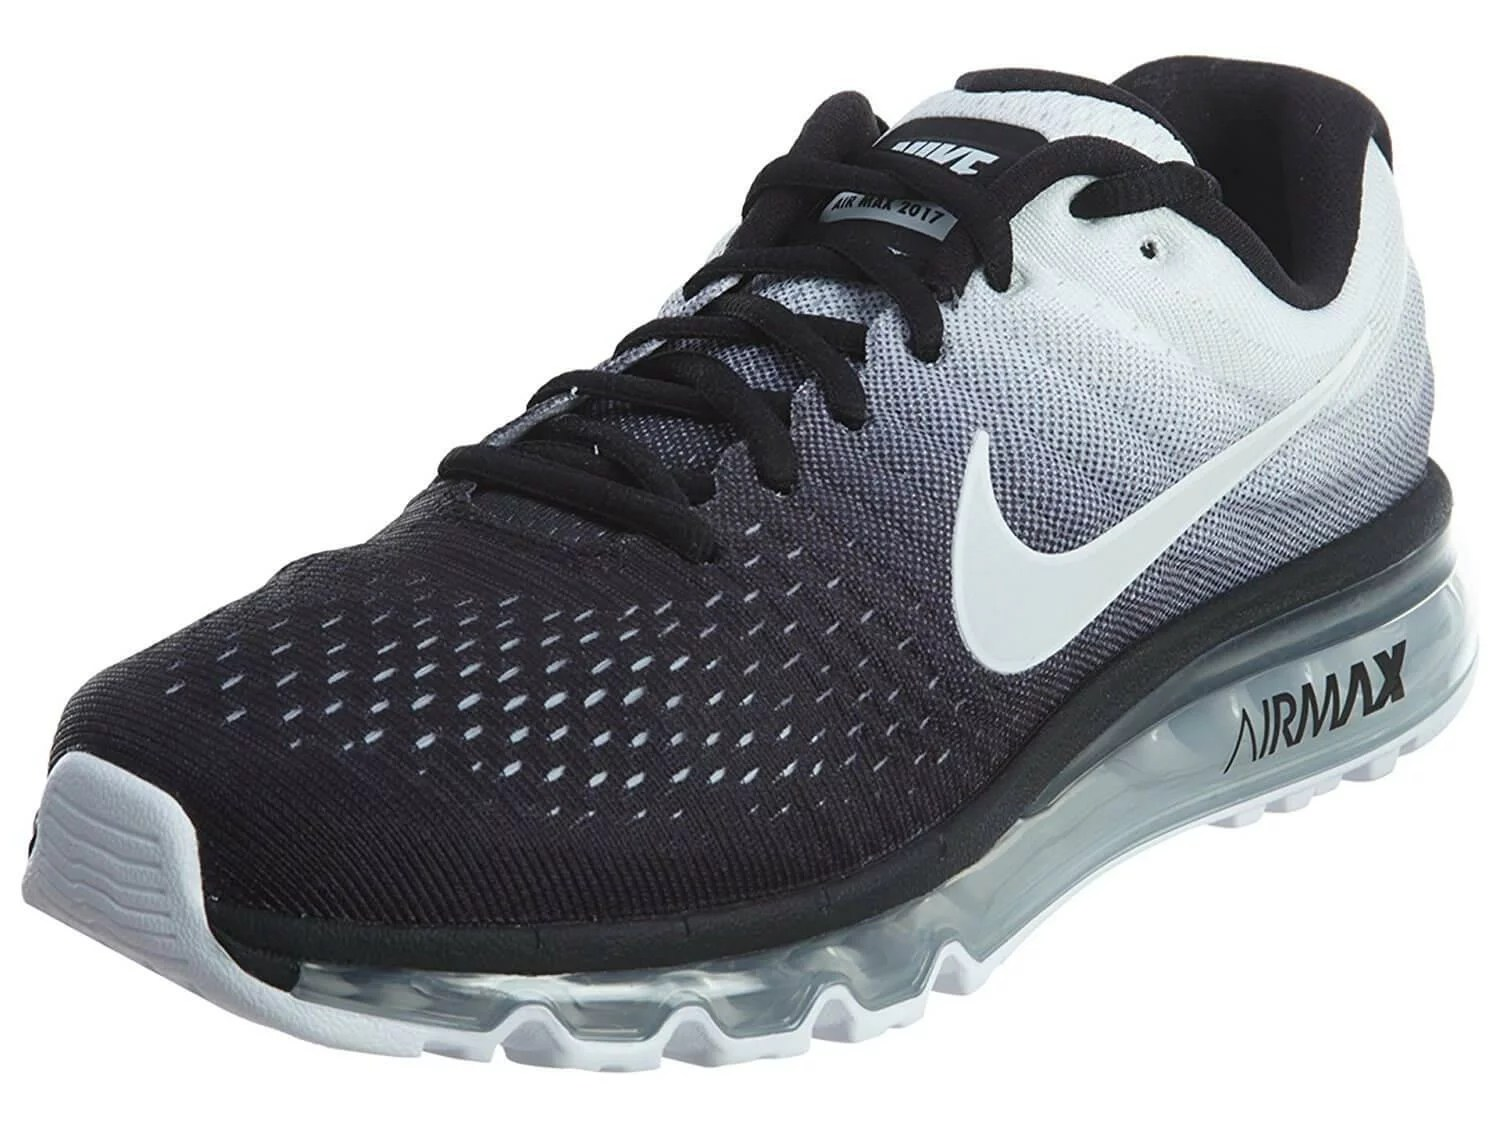 Air Max Running Nike Air Max 2017 Fully Reviewed And Compared